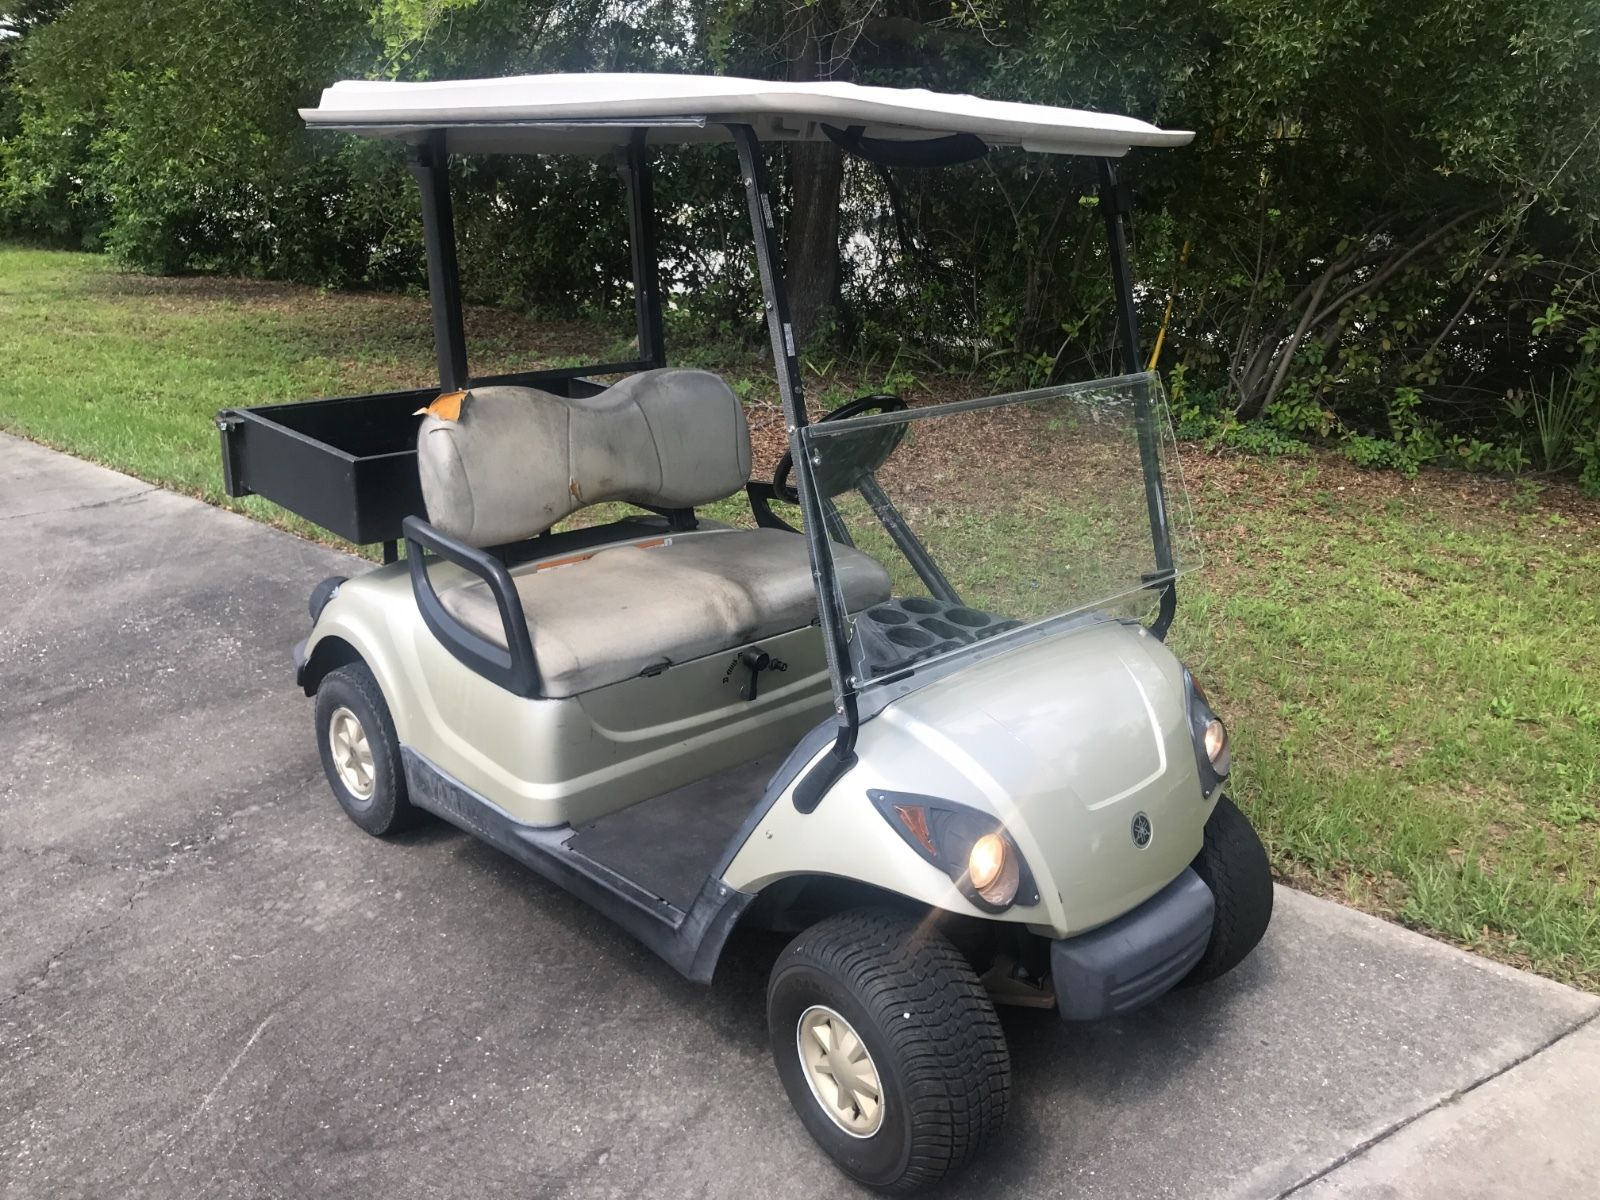 Yamaha Gas Golf Cart For Sale By Owner